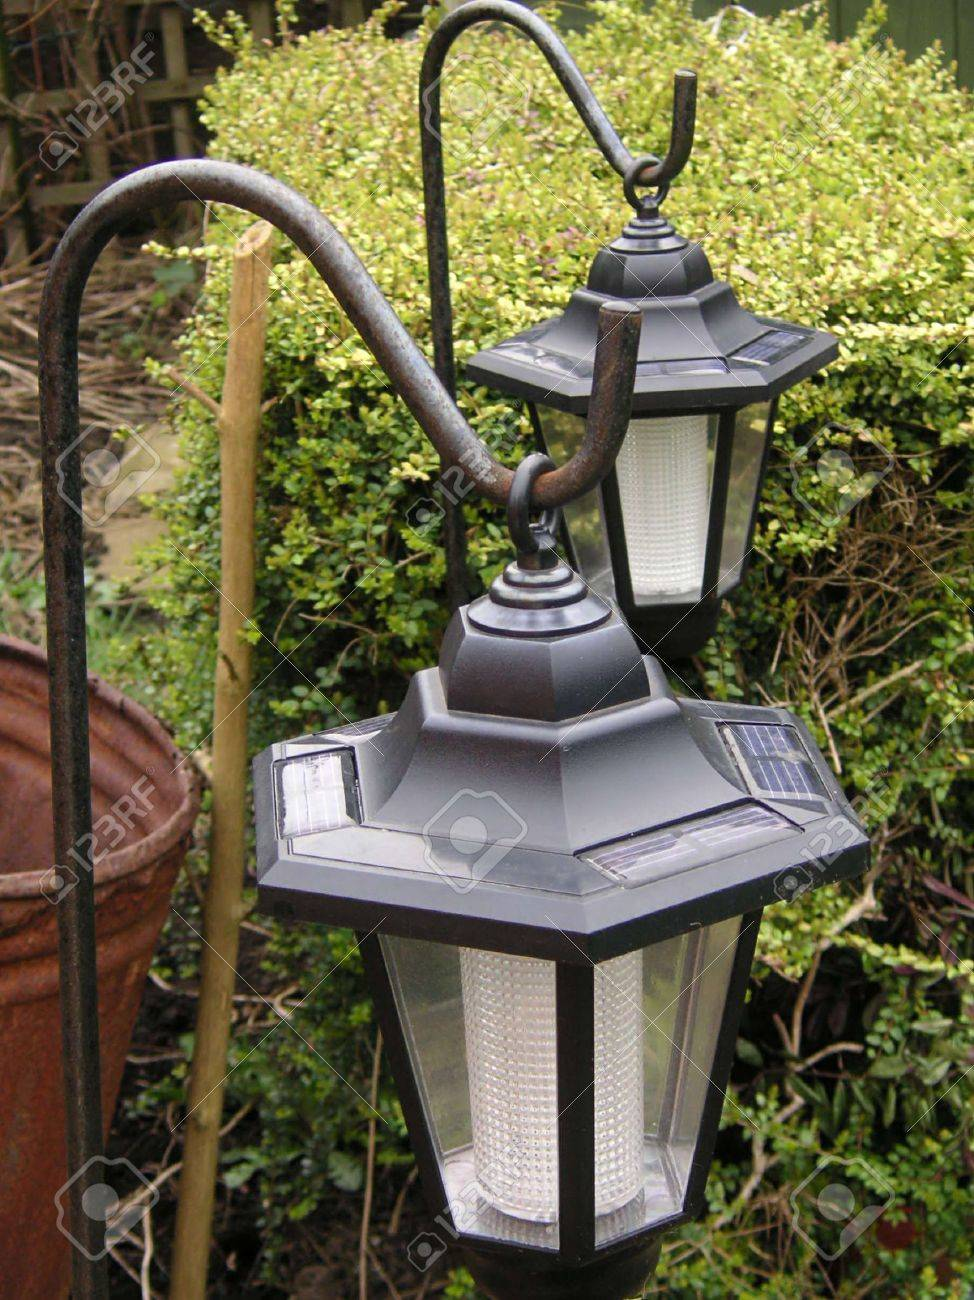 Solar Powered Garden Lighting On Hooks Stock Photo Picture And Royalty Free Image Image 336736